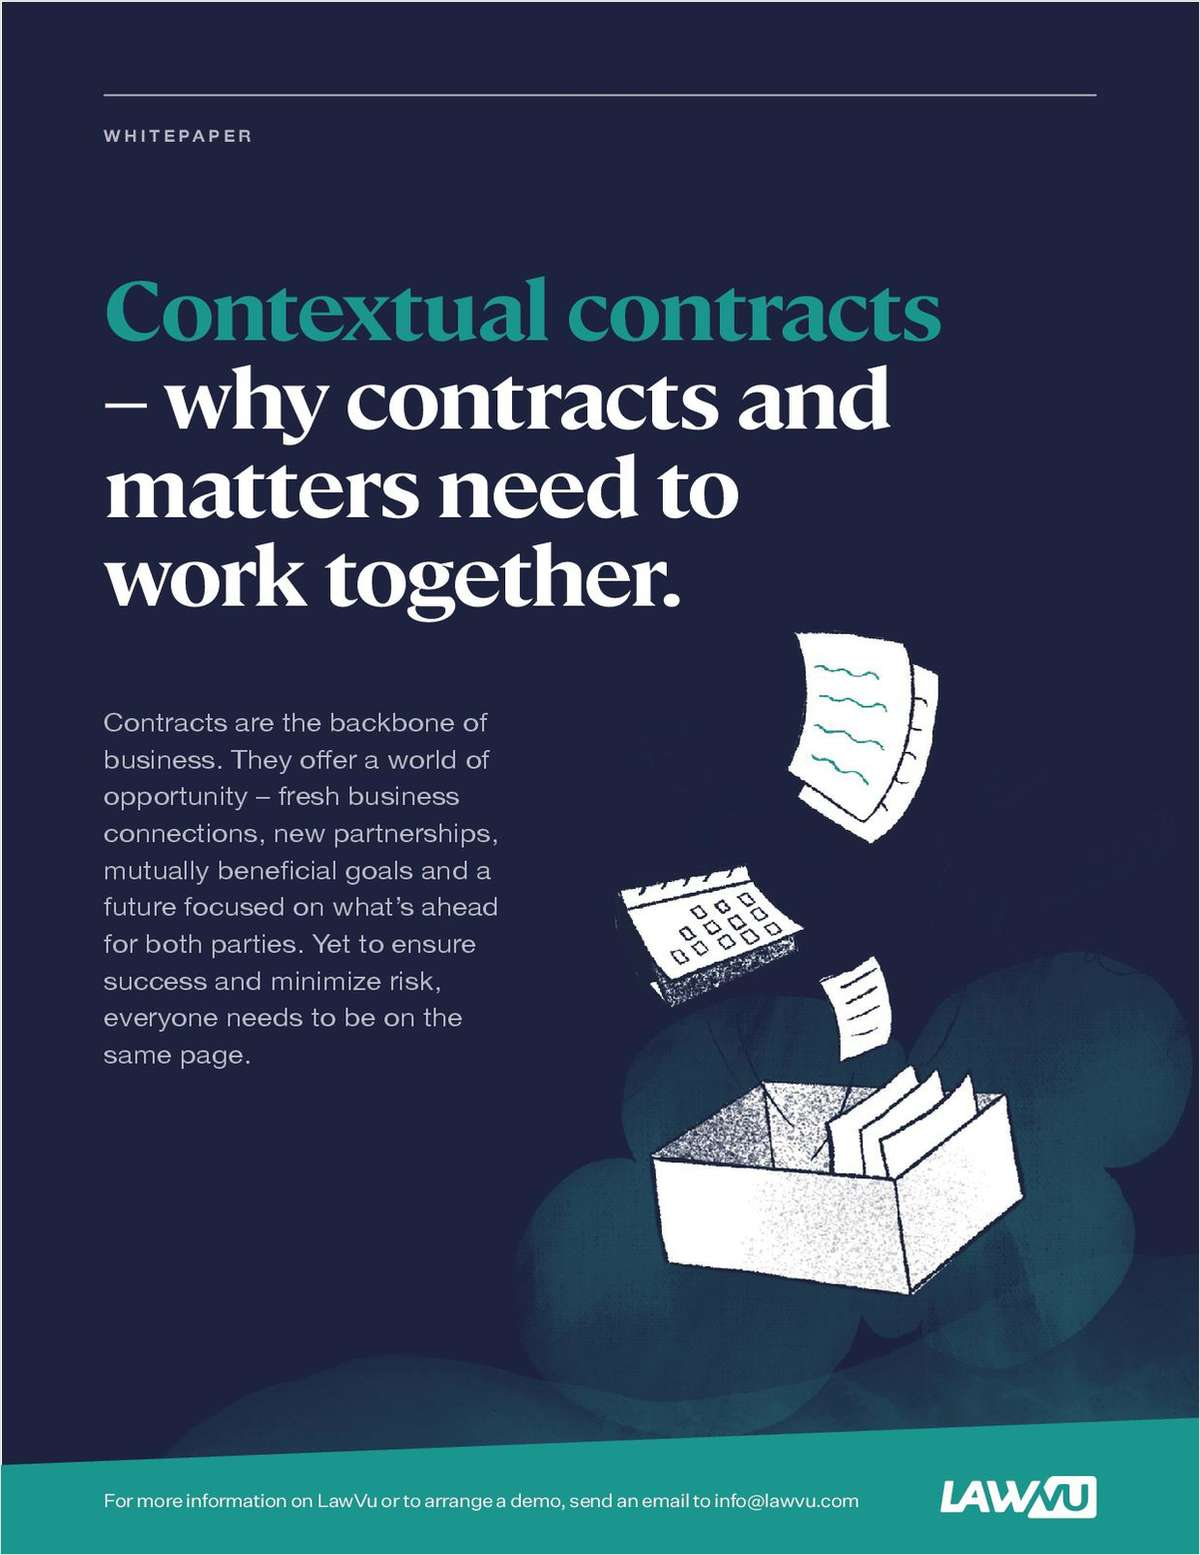 Contracts are the backbone of business. They offer a world of opportunity -- fresh business connections, new partnerships, mutually beneficial goals and a future focused on what's ahead for both parties. Yet, to ensure success and minimize risk, everyone needs to be on the same page. Discover how to bring contracts and matters together to provide true, actionable insights.